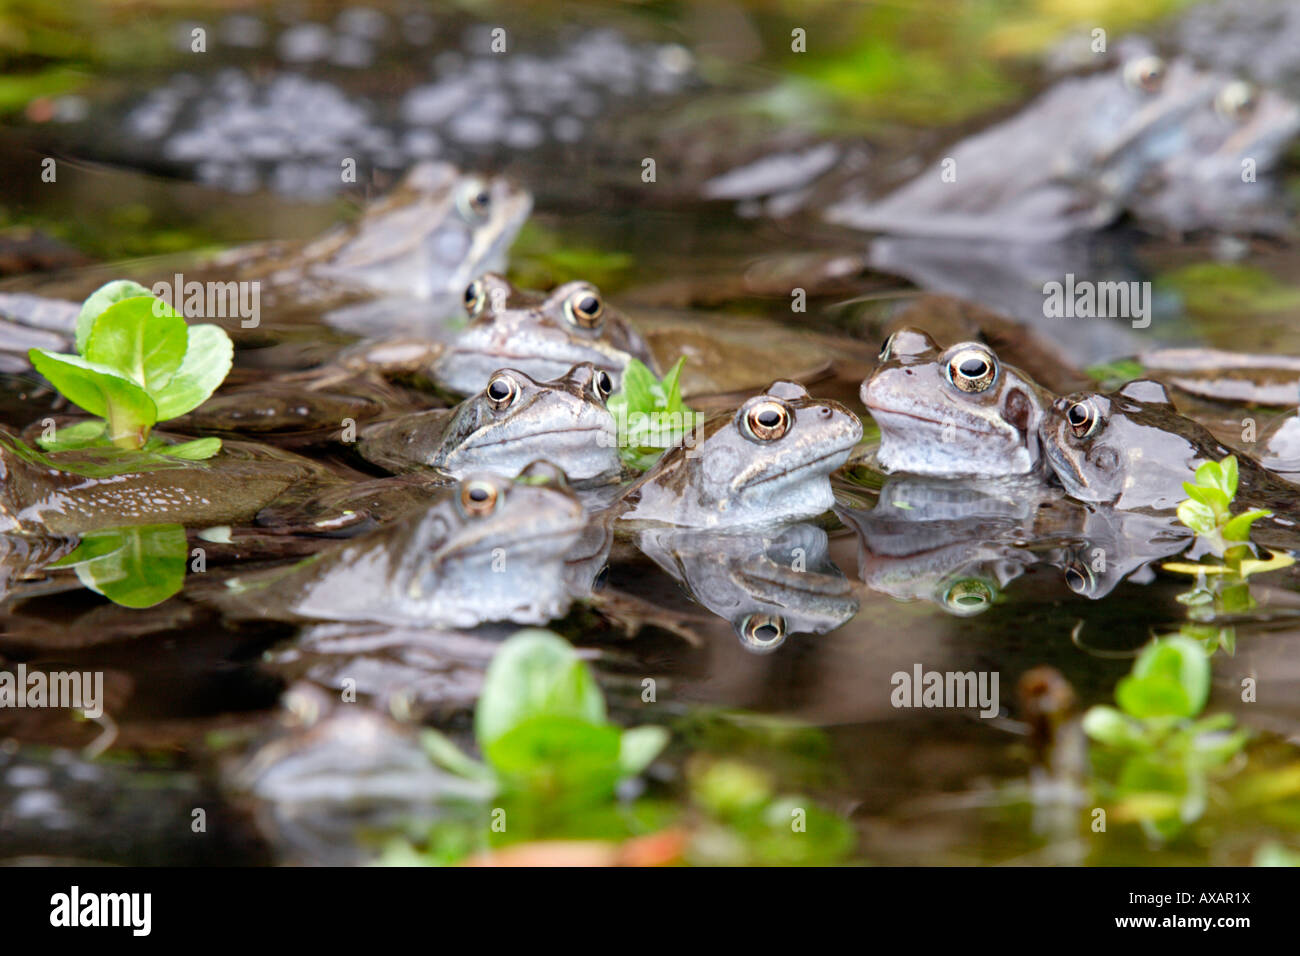 Mass of Common Frogs in a garden pond with spawn during the